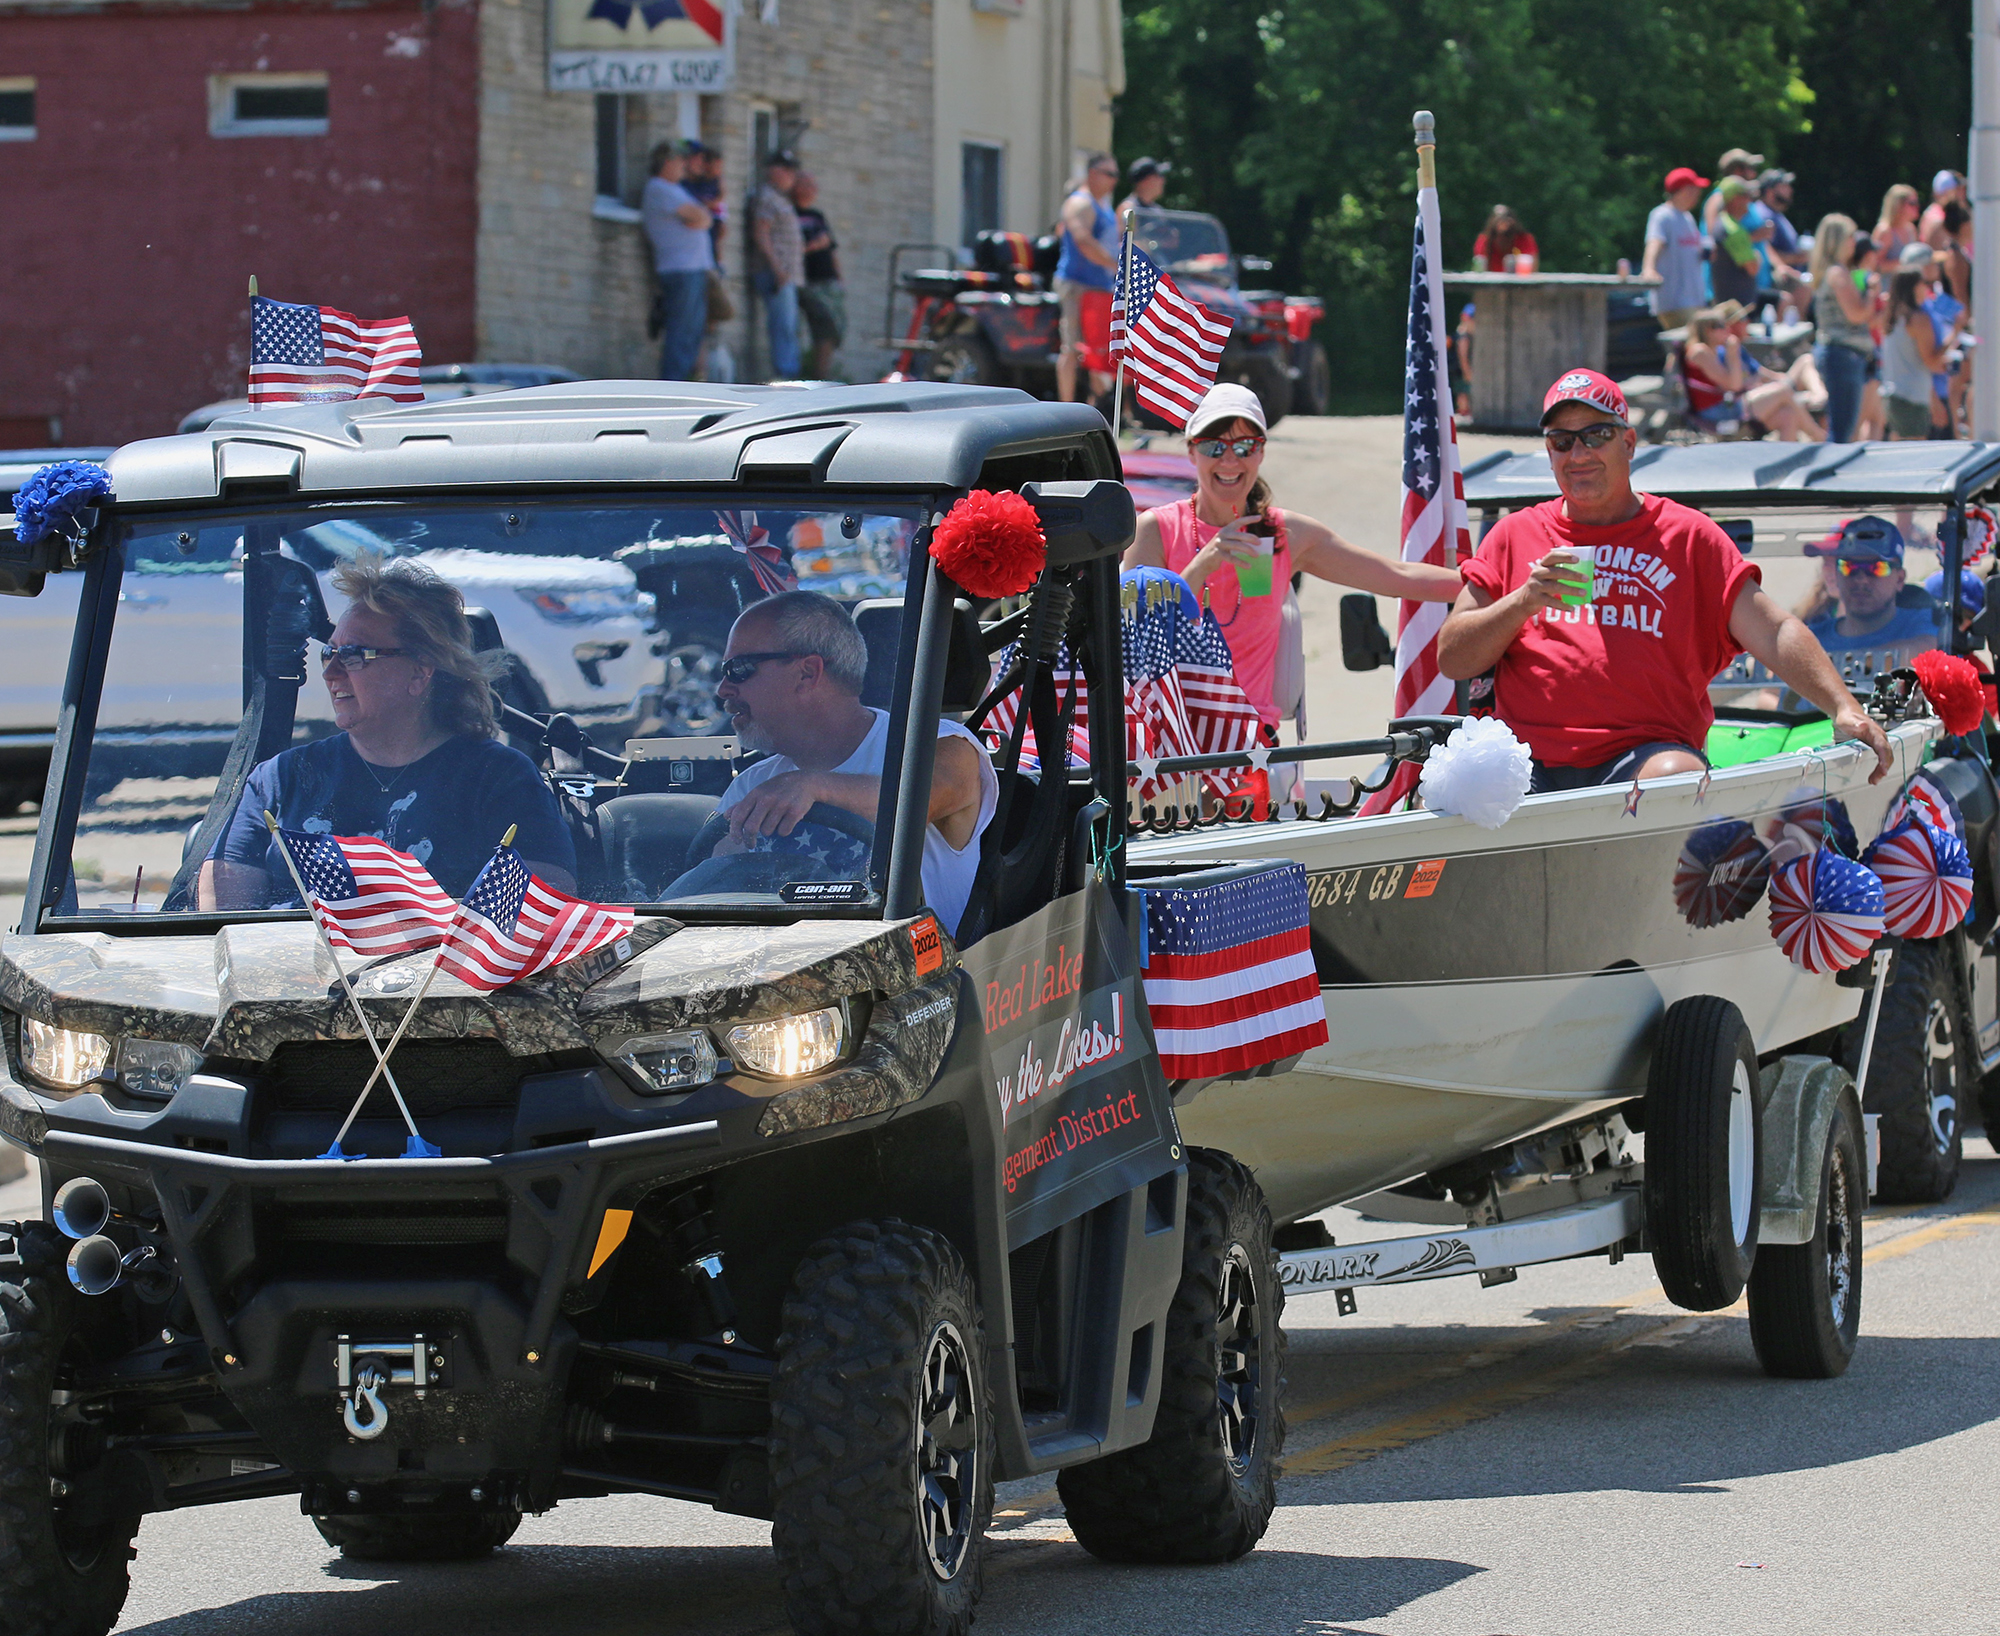 Members of the Red Lake Management District helped usher in summer with their entry in the Gresham Fourth of July celebration, held June 27 in downtown Gresham. The event included music and food, but children's activities were canceled. Carol Ryczek | NEW Media